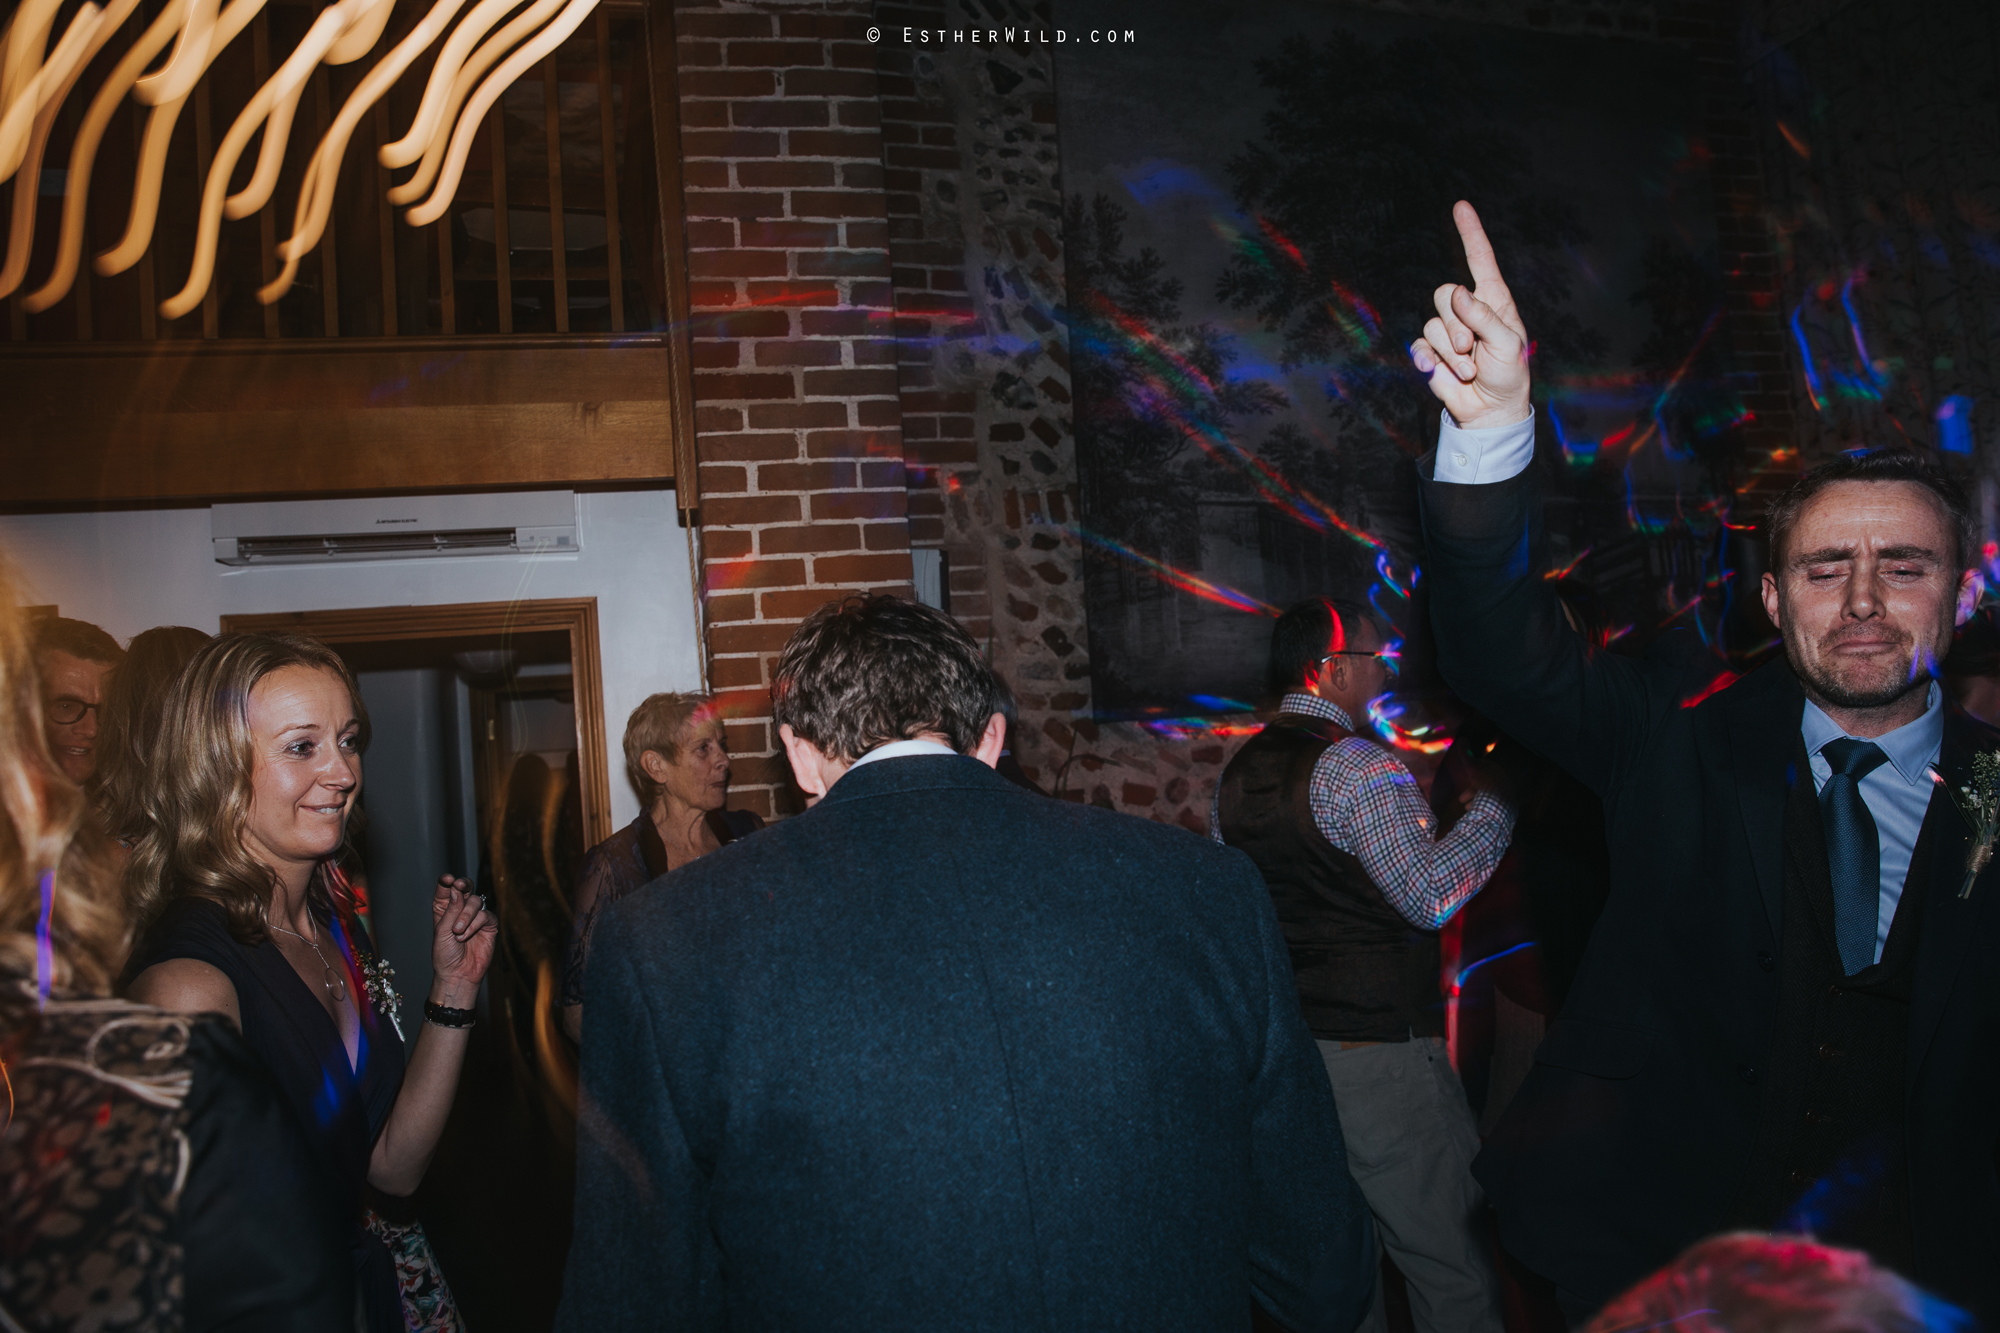 Wedding_Photographer_Chaucer_Barn_Holt_Norfolk_Country_Rustic_Venue_Copyright_Esther_Wild_IMG_2454.jpg